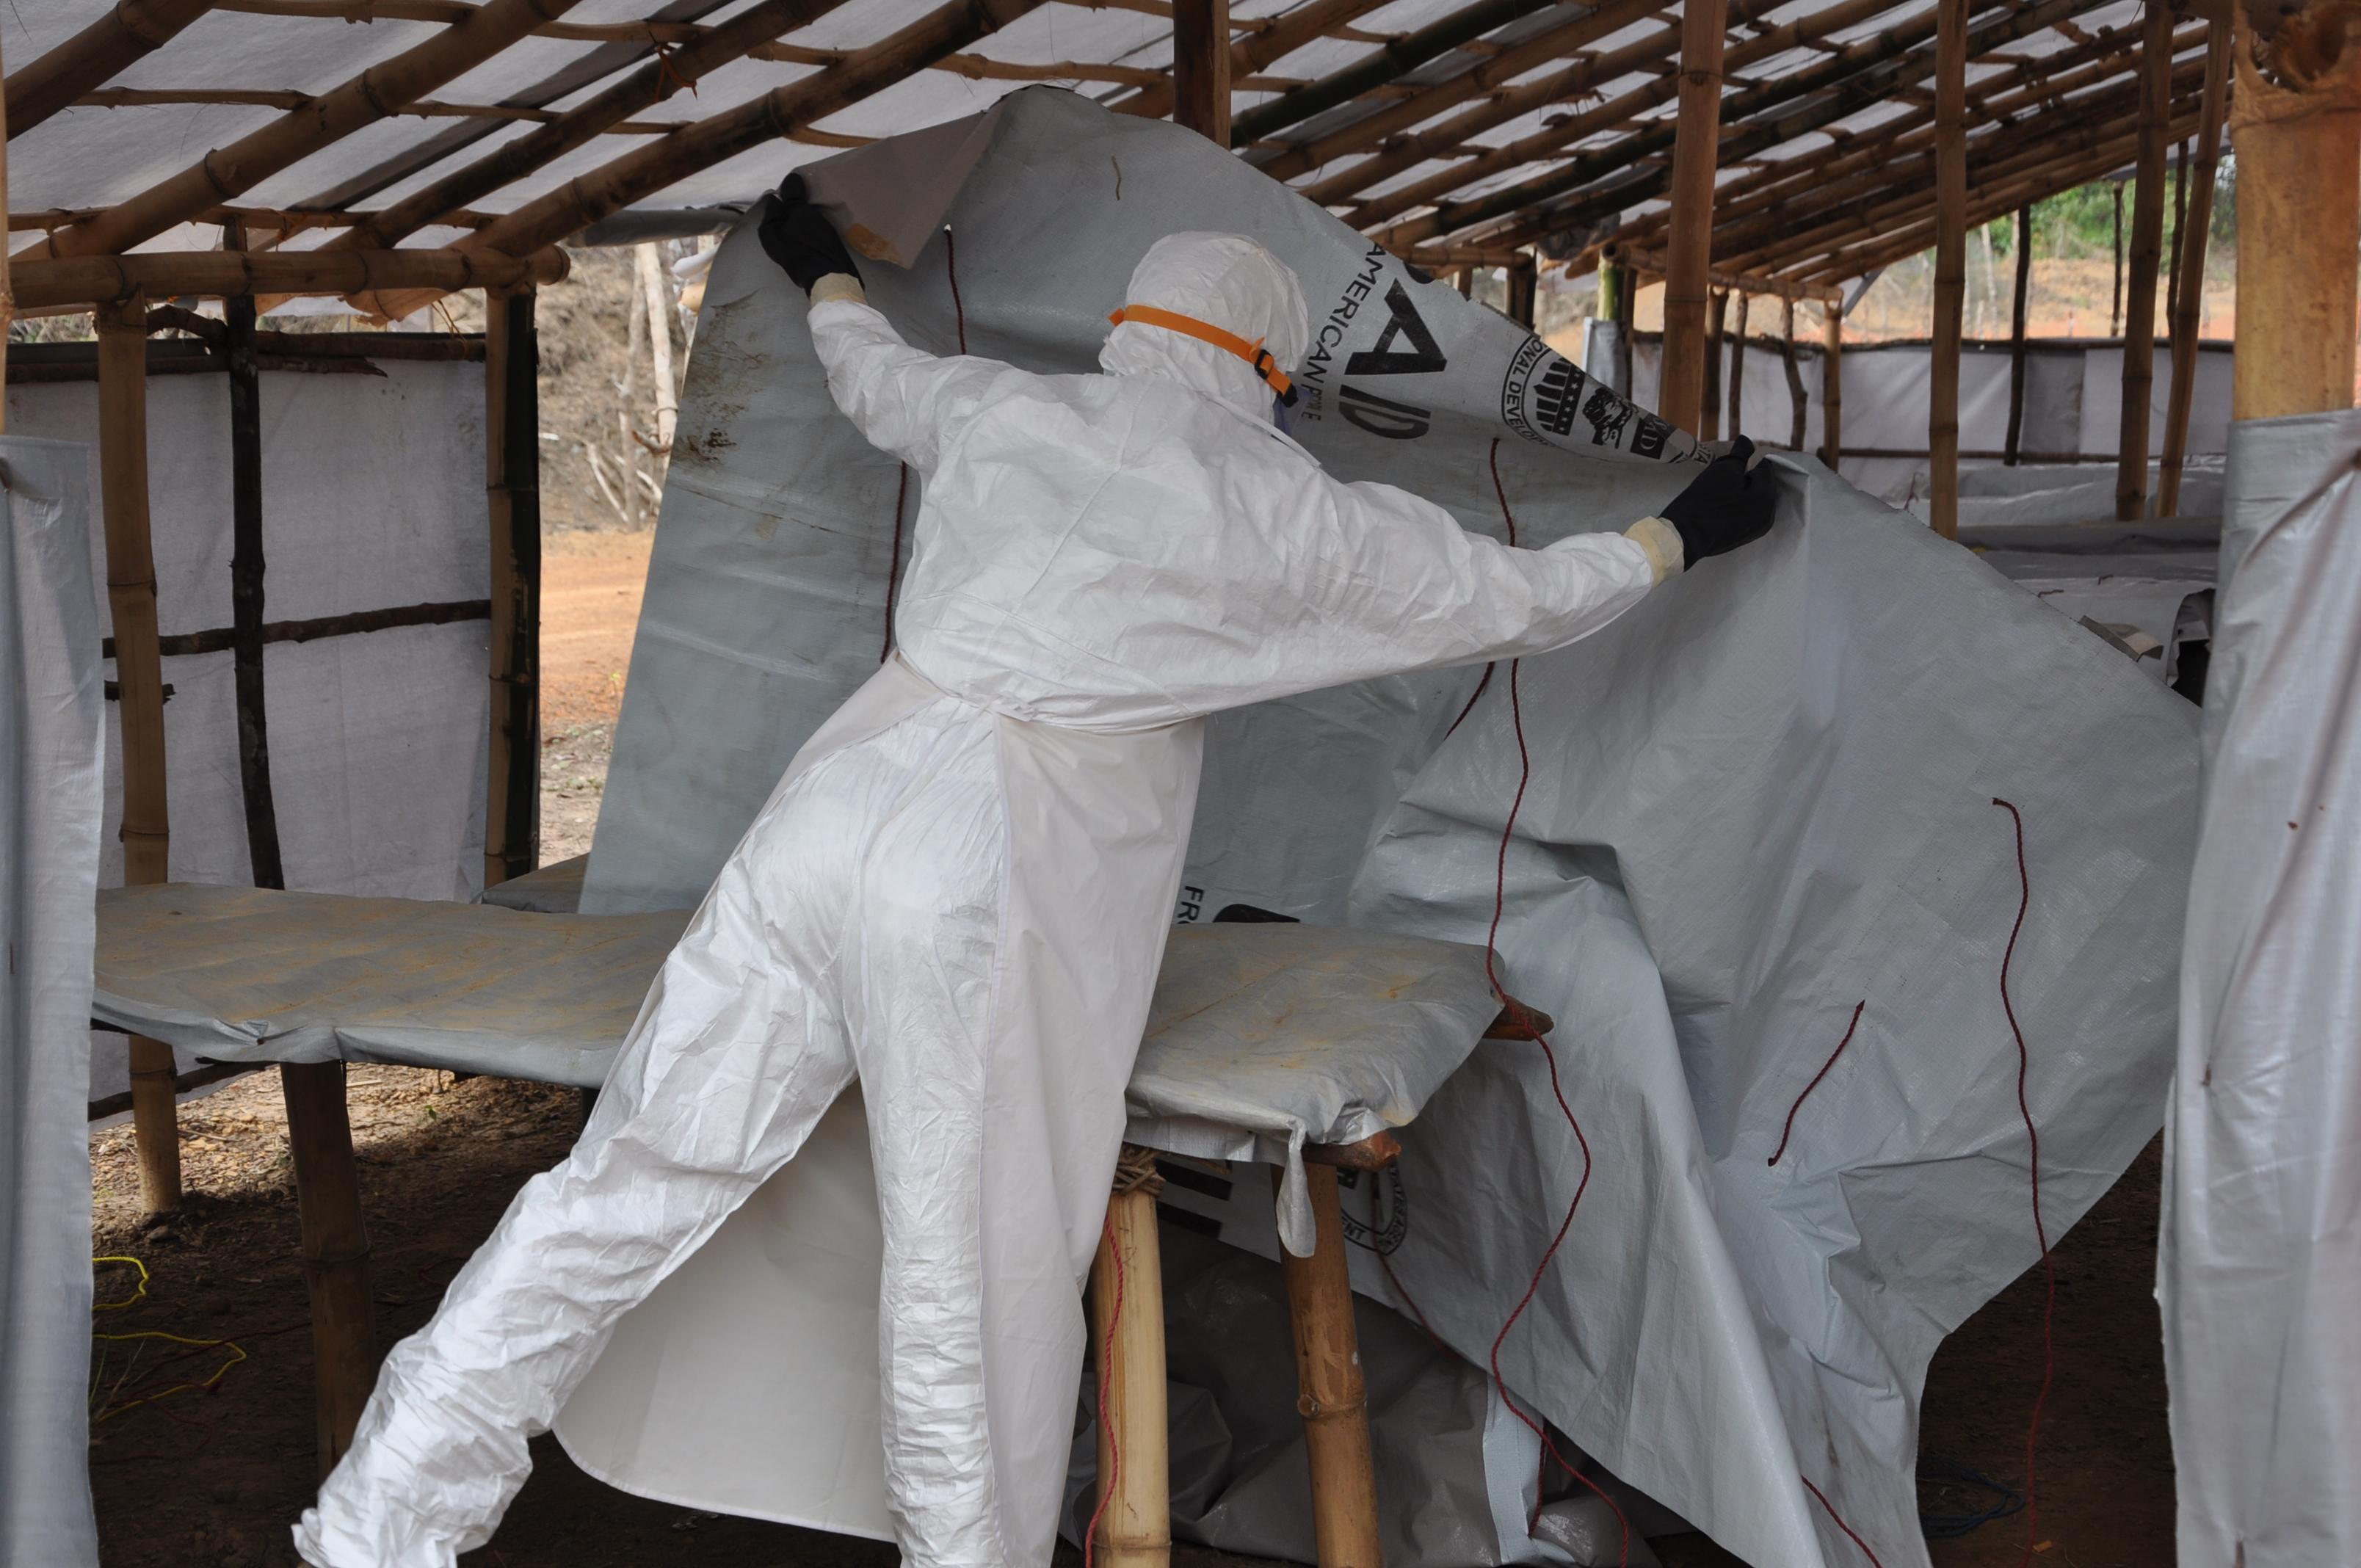 A member of the burial team gets the tented morgue ready. (c)UNICEF/Liberia/2015/Ryeng